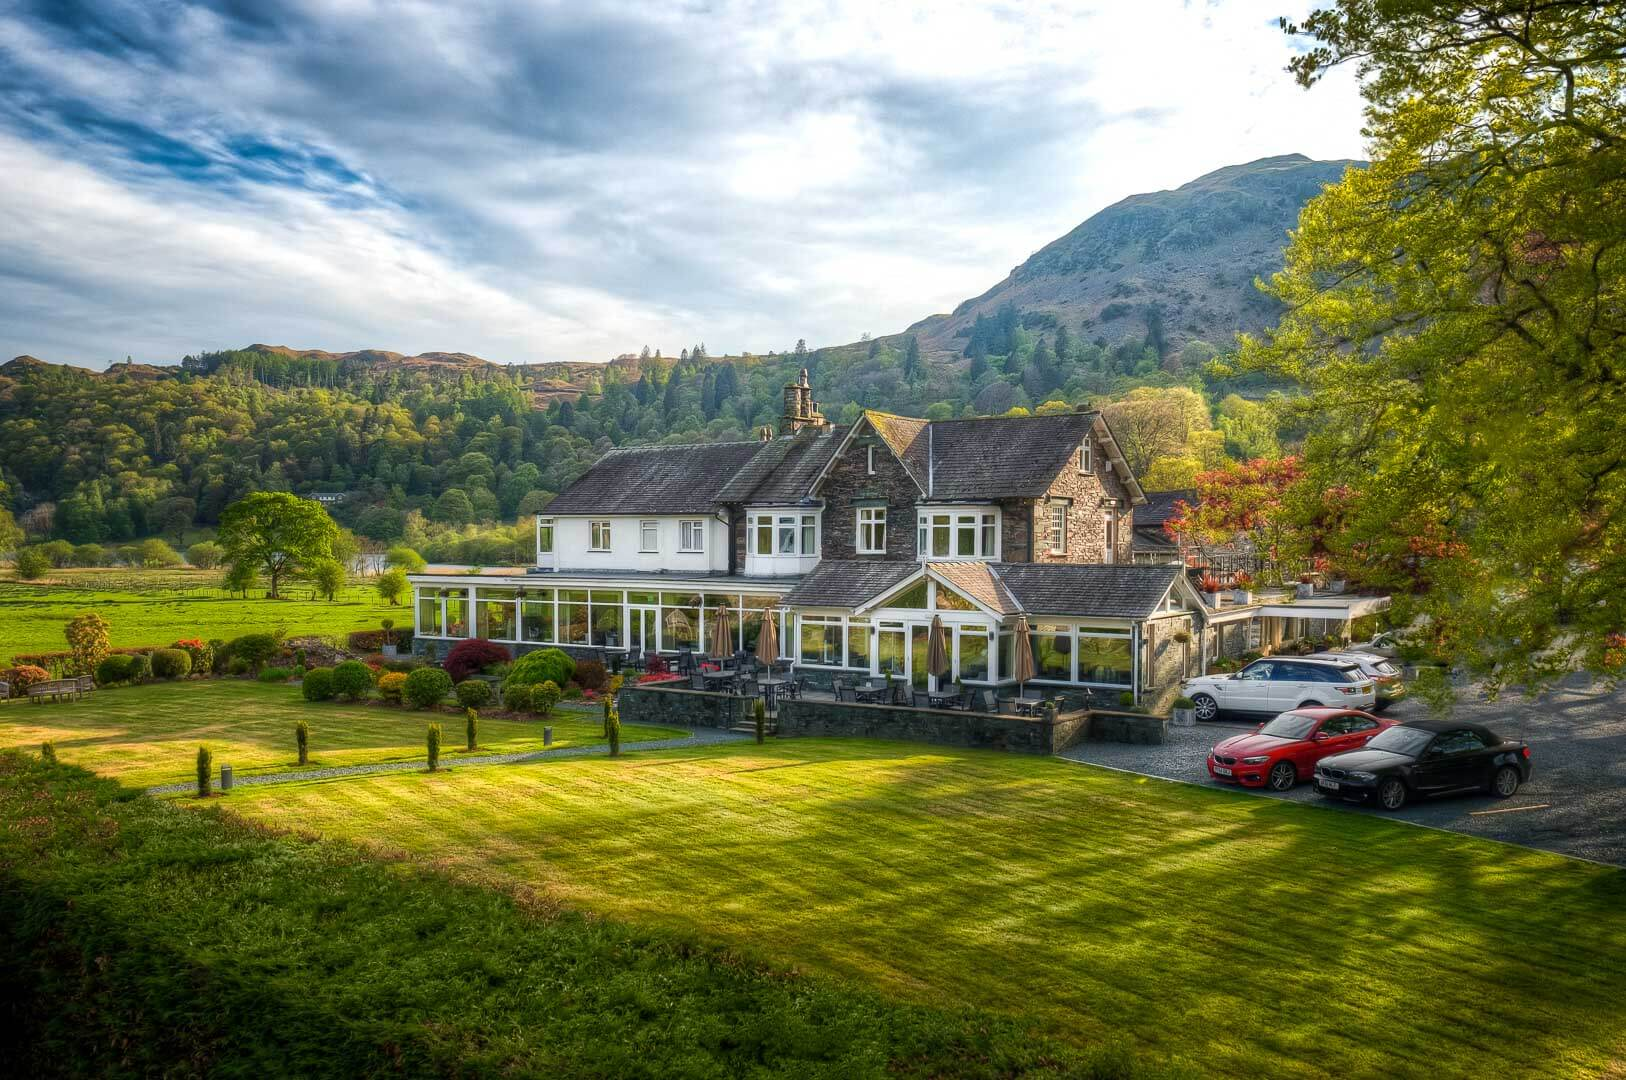 Grand at Grasmere Hotel